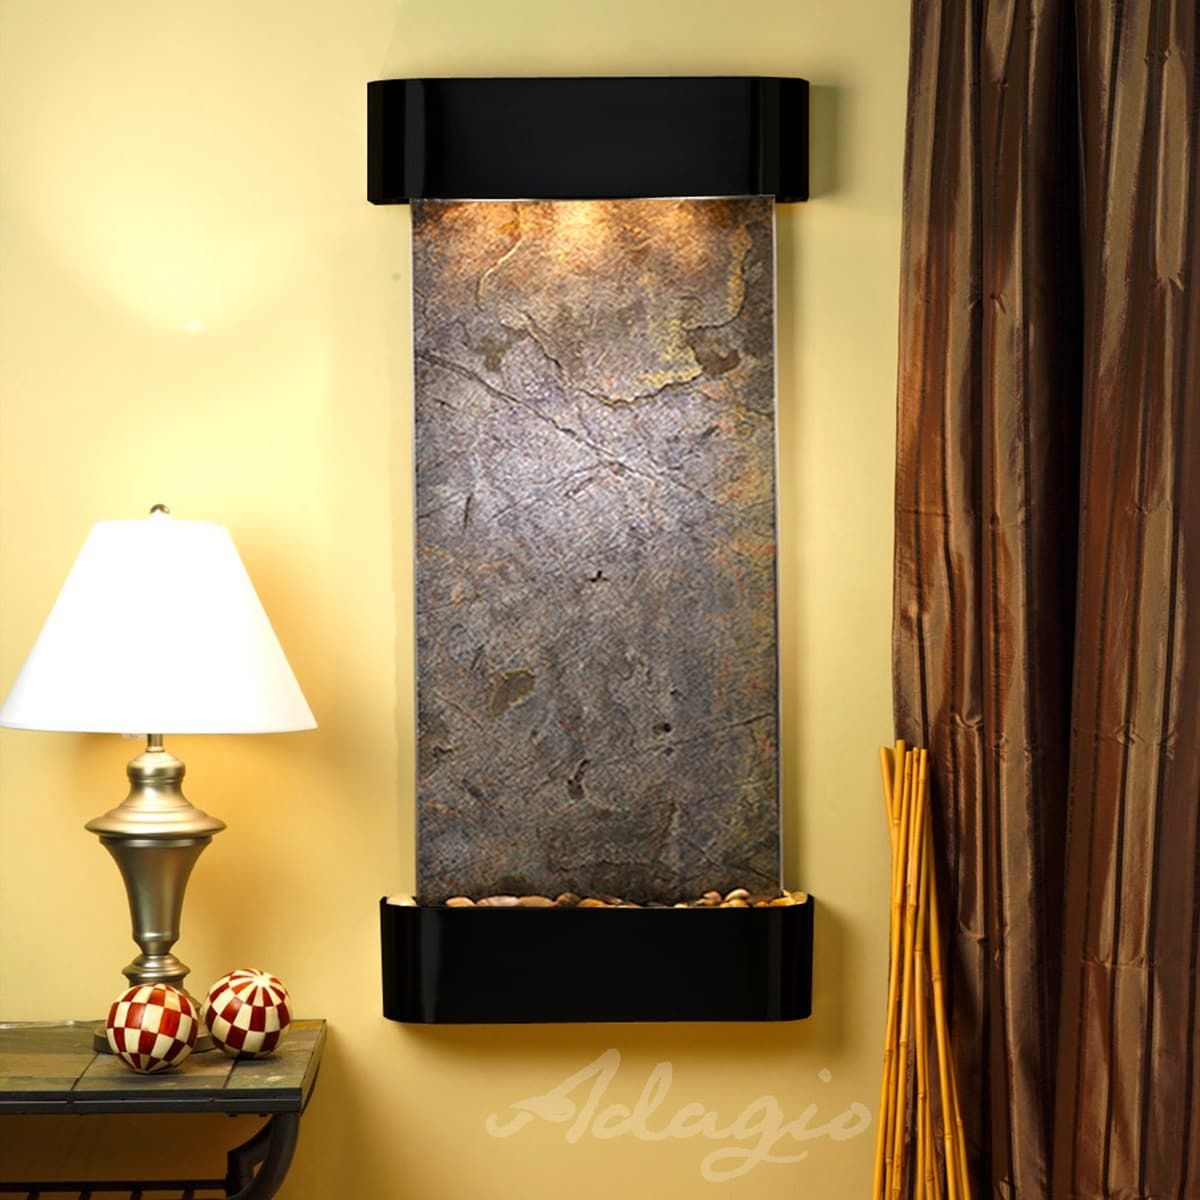 Adagio Cascade Springs Fountain with Blackened Copper Finish and ...